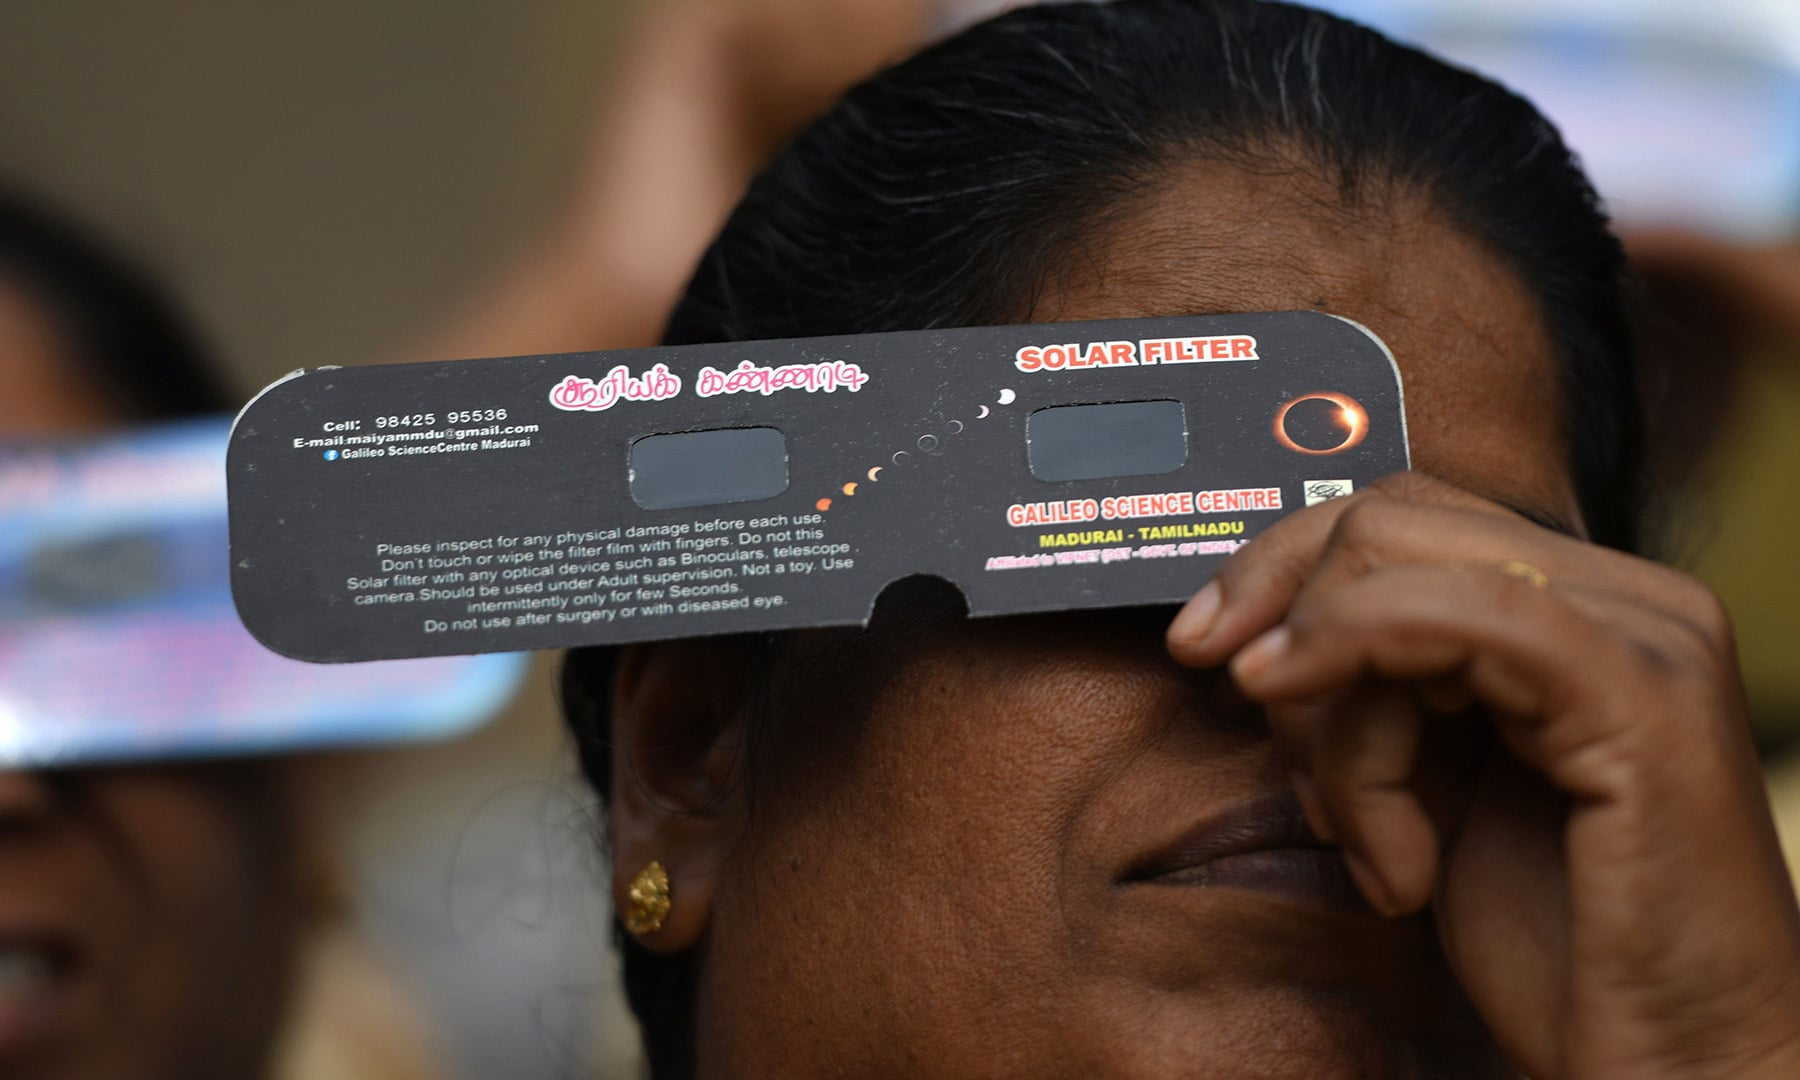 """A woman uses solar filter glasses to watch the moon covering the sun in a rare """"ring of fire"""" solar eclipse as seen from the south Indian city of Dindigul in Tamil Nadu state on December 26. — AFP"""